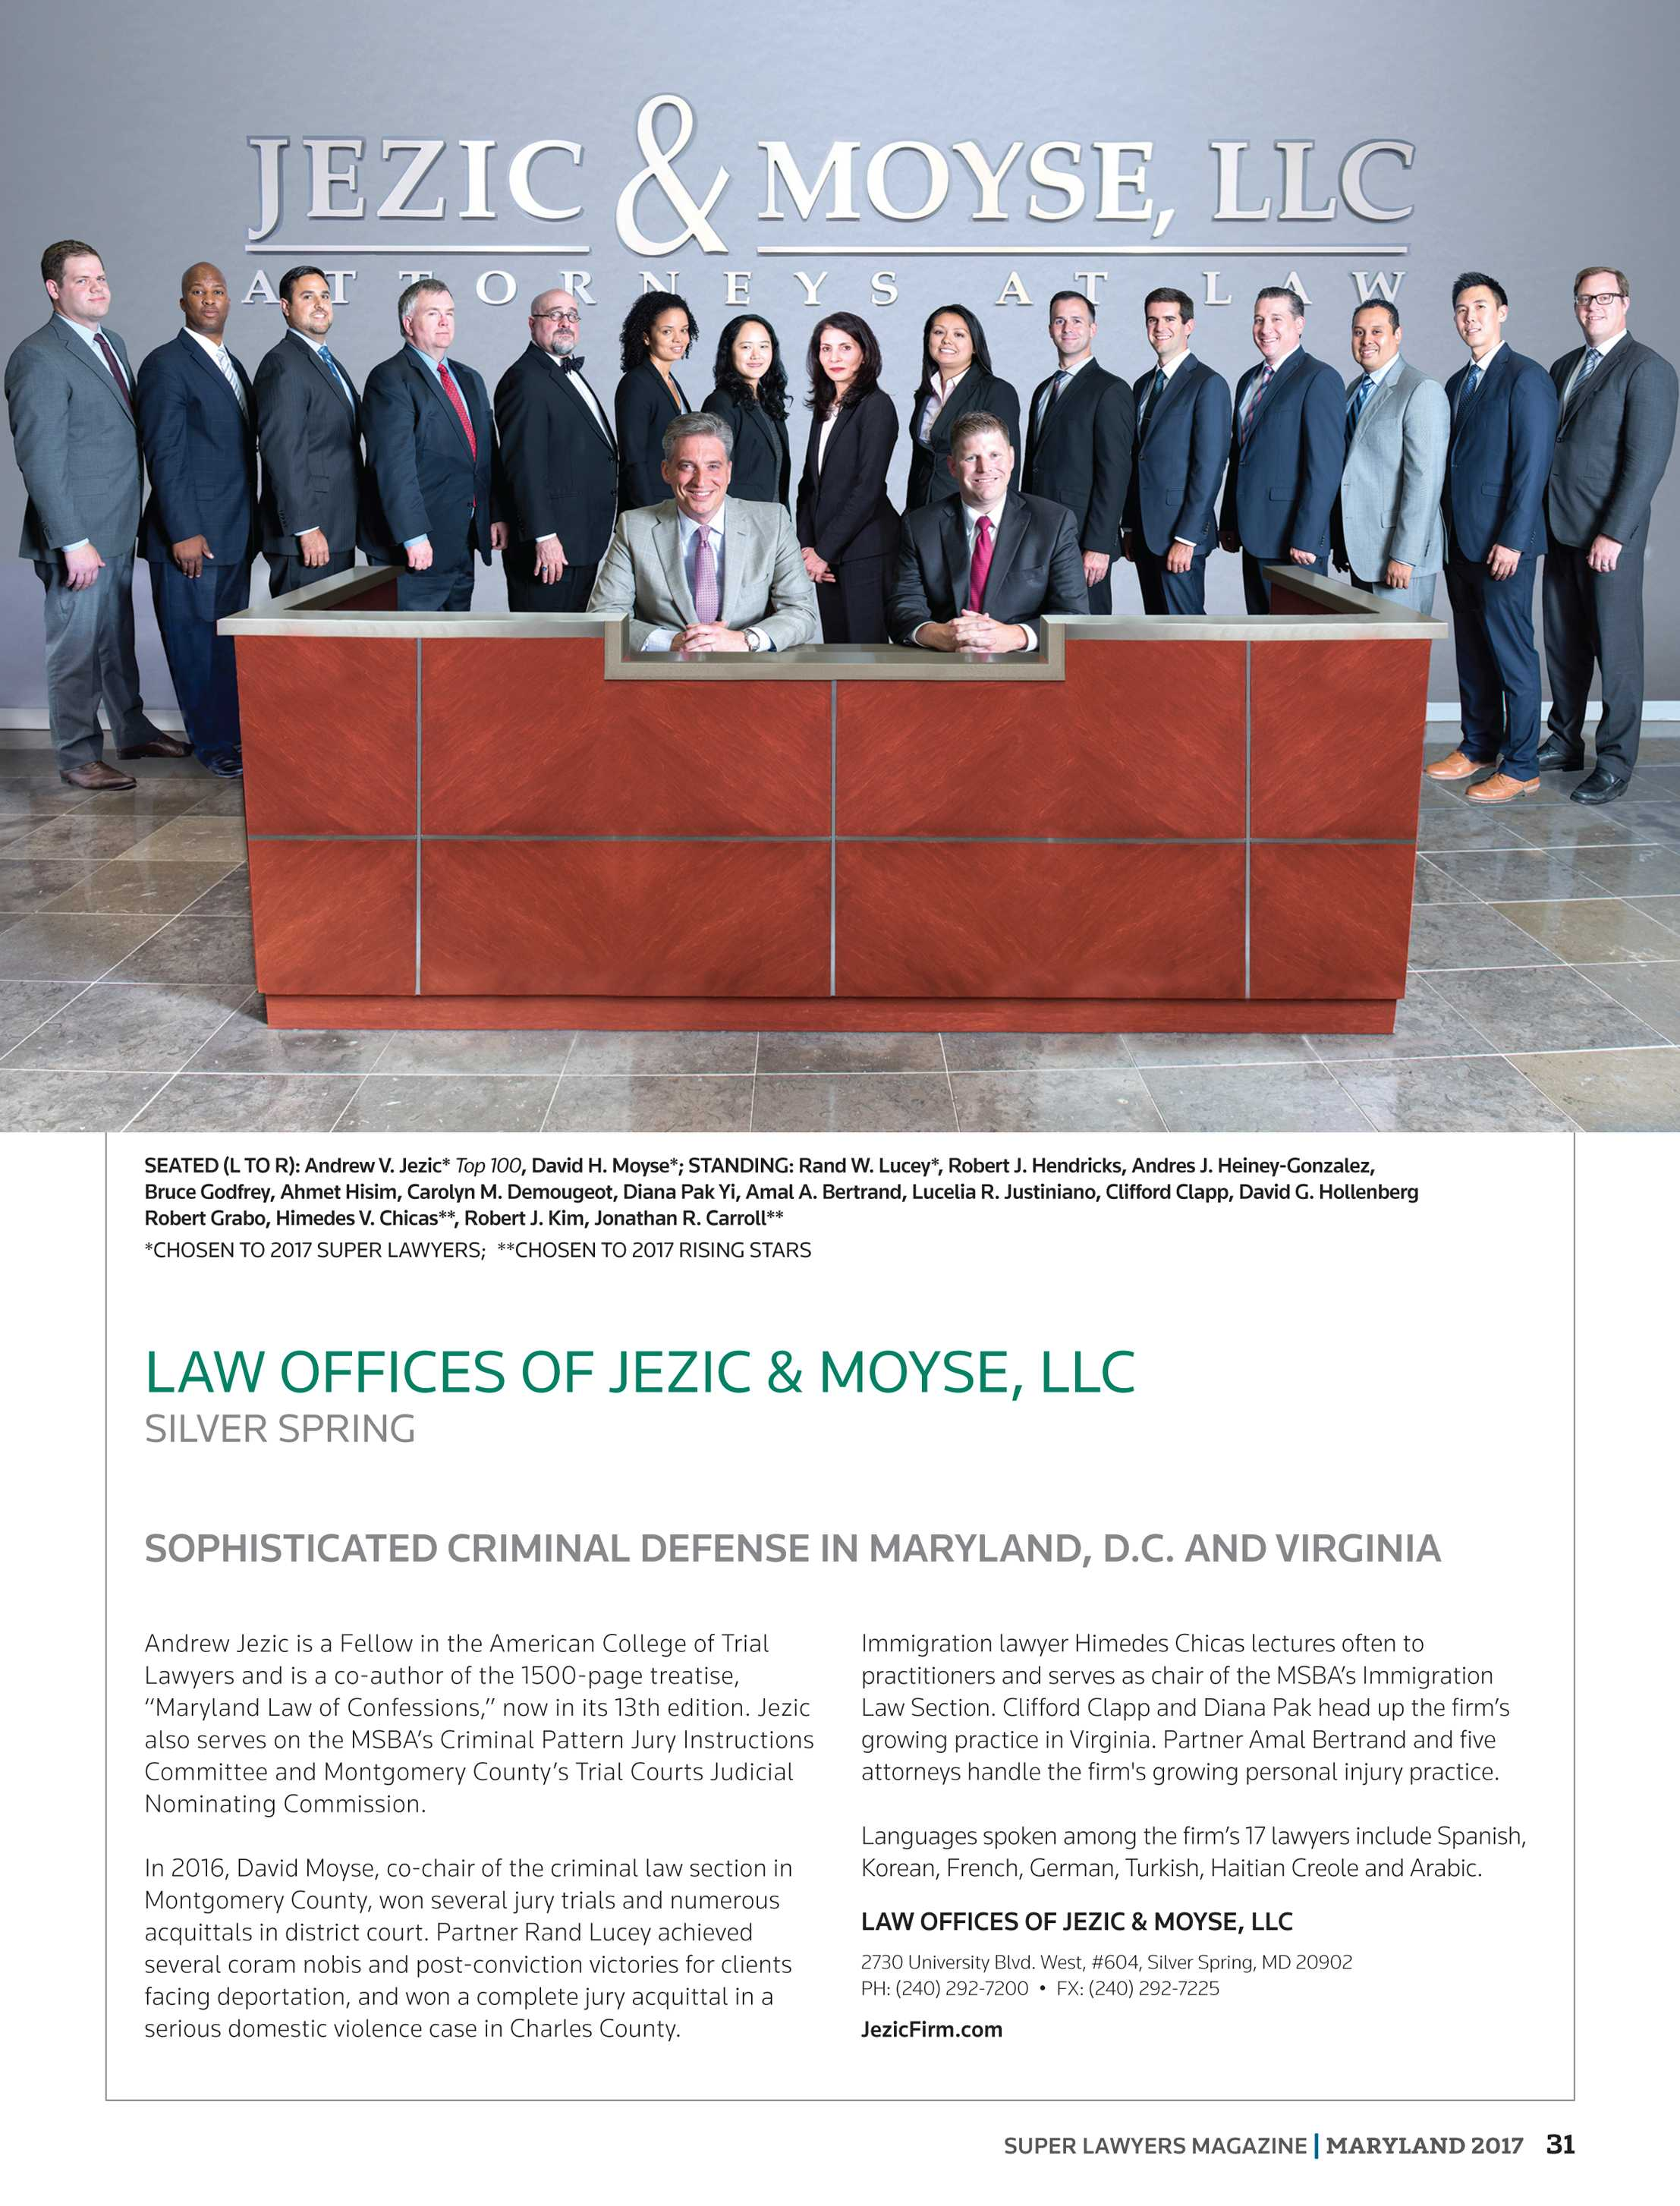 Super Lawyers - Maryland 2017 - page 31